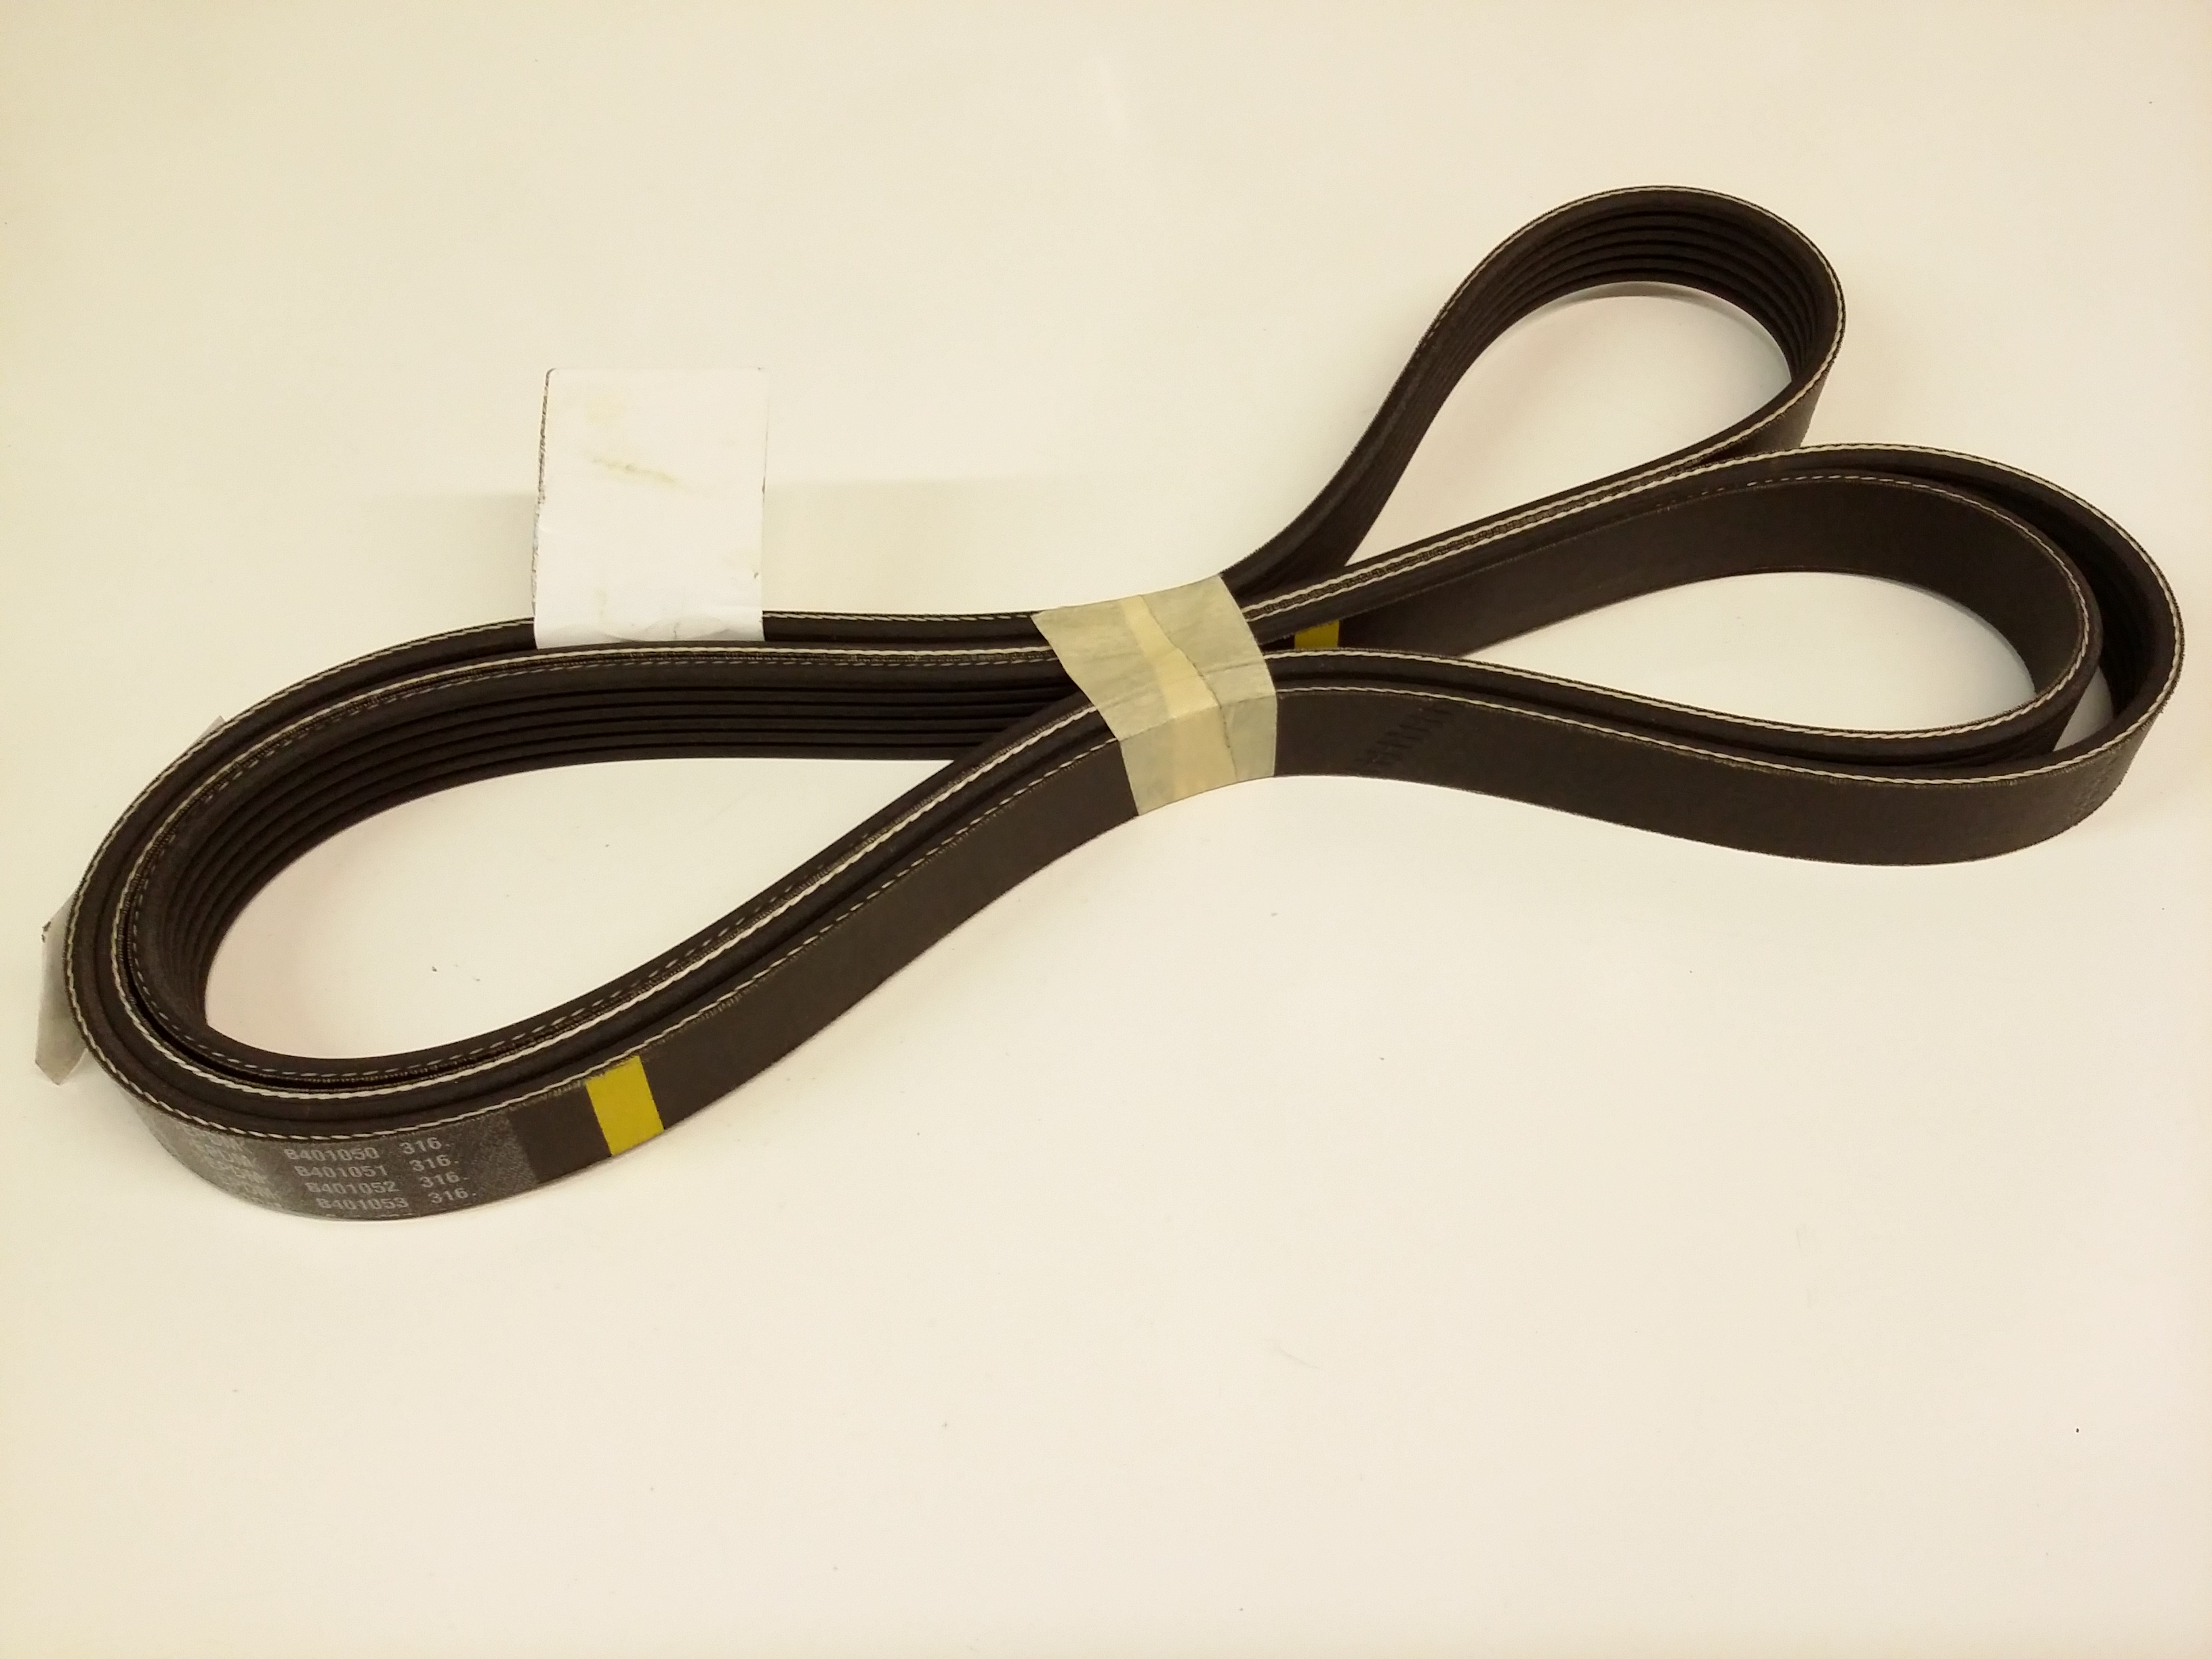 Diagram V-Belts for your 1997 Toyota Camry LE (VIN: JT2BG22K) 2.2L AT